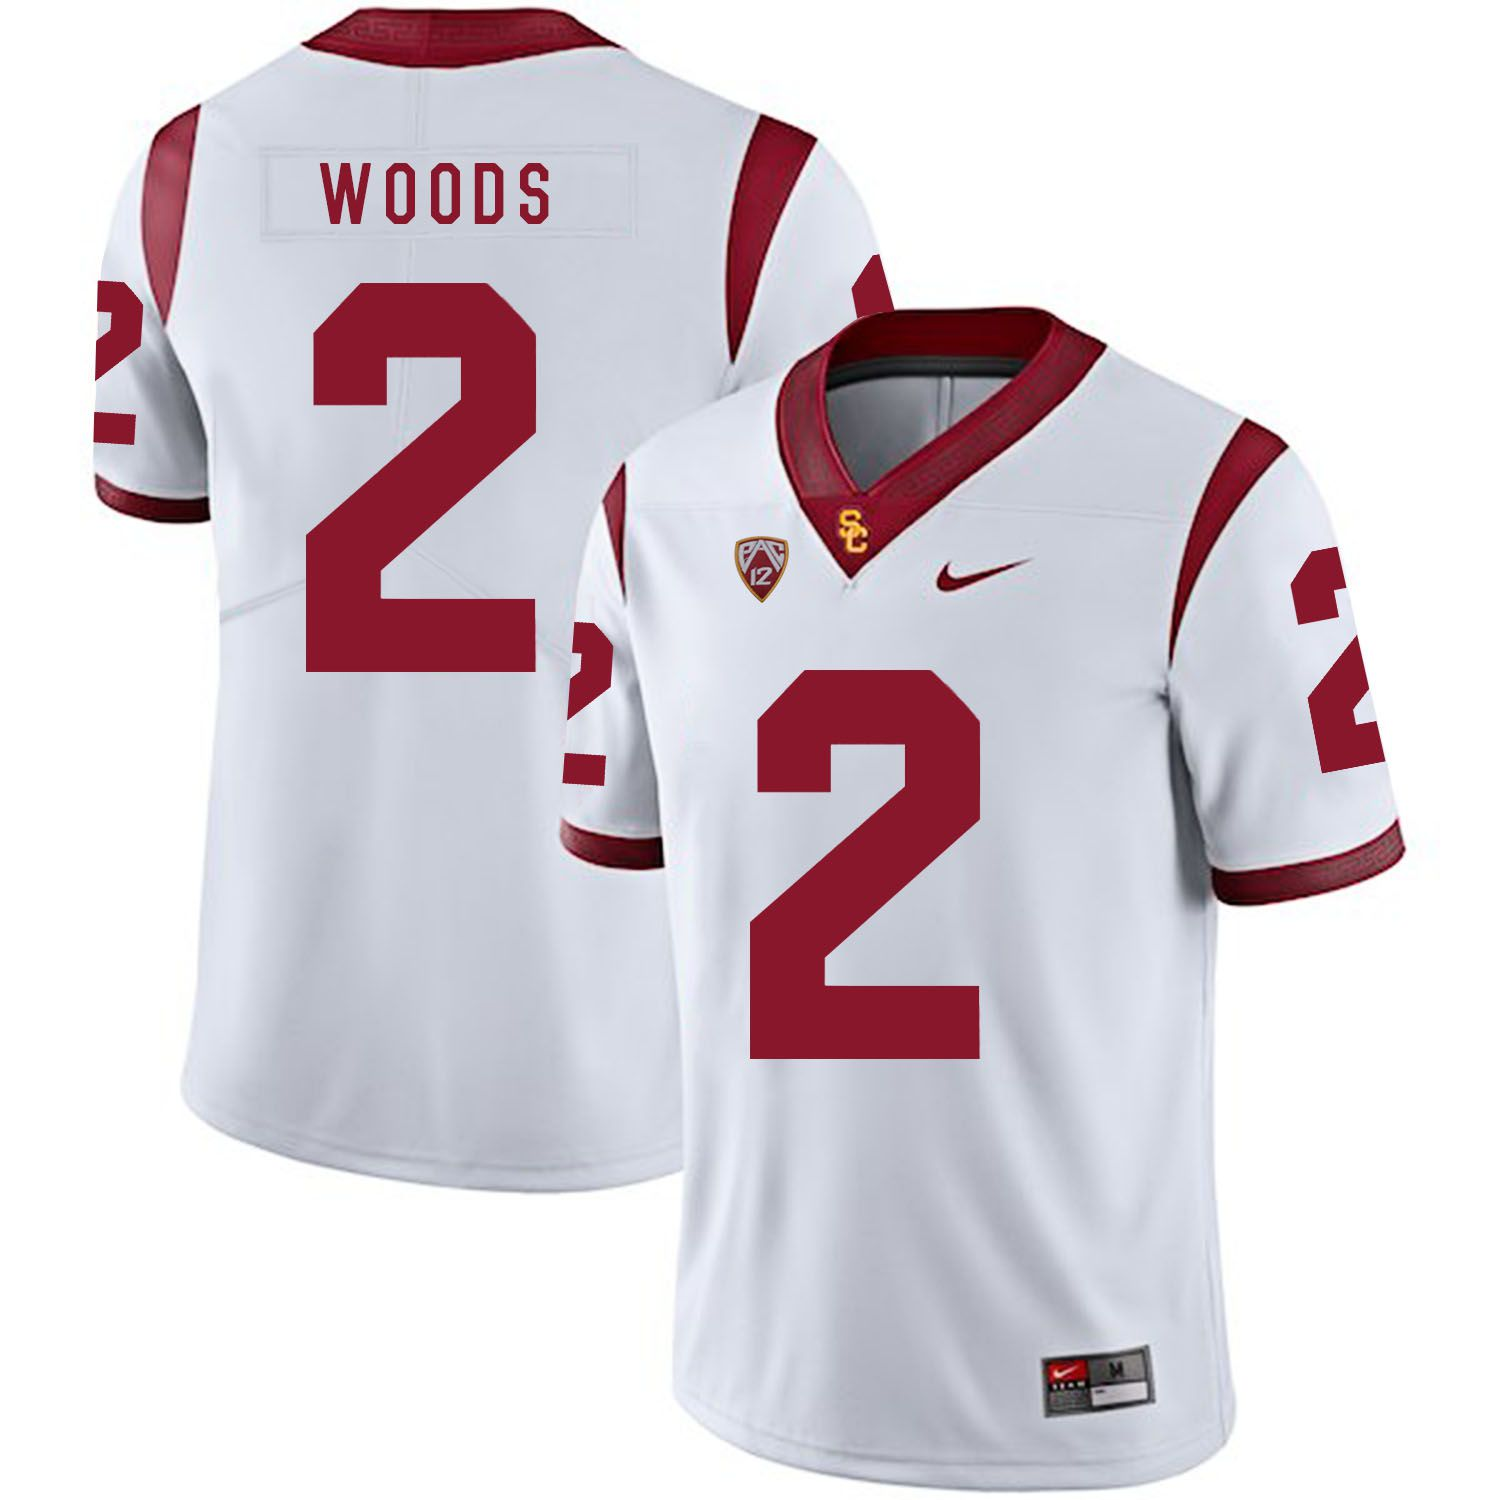 Men USC Trojans 2 Woods White Customized NCAA Jerseys